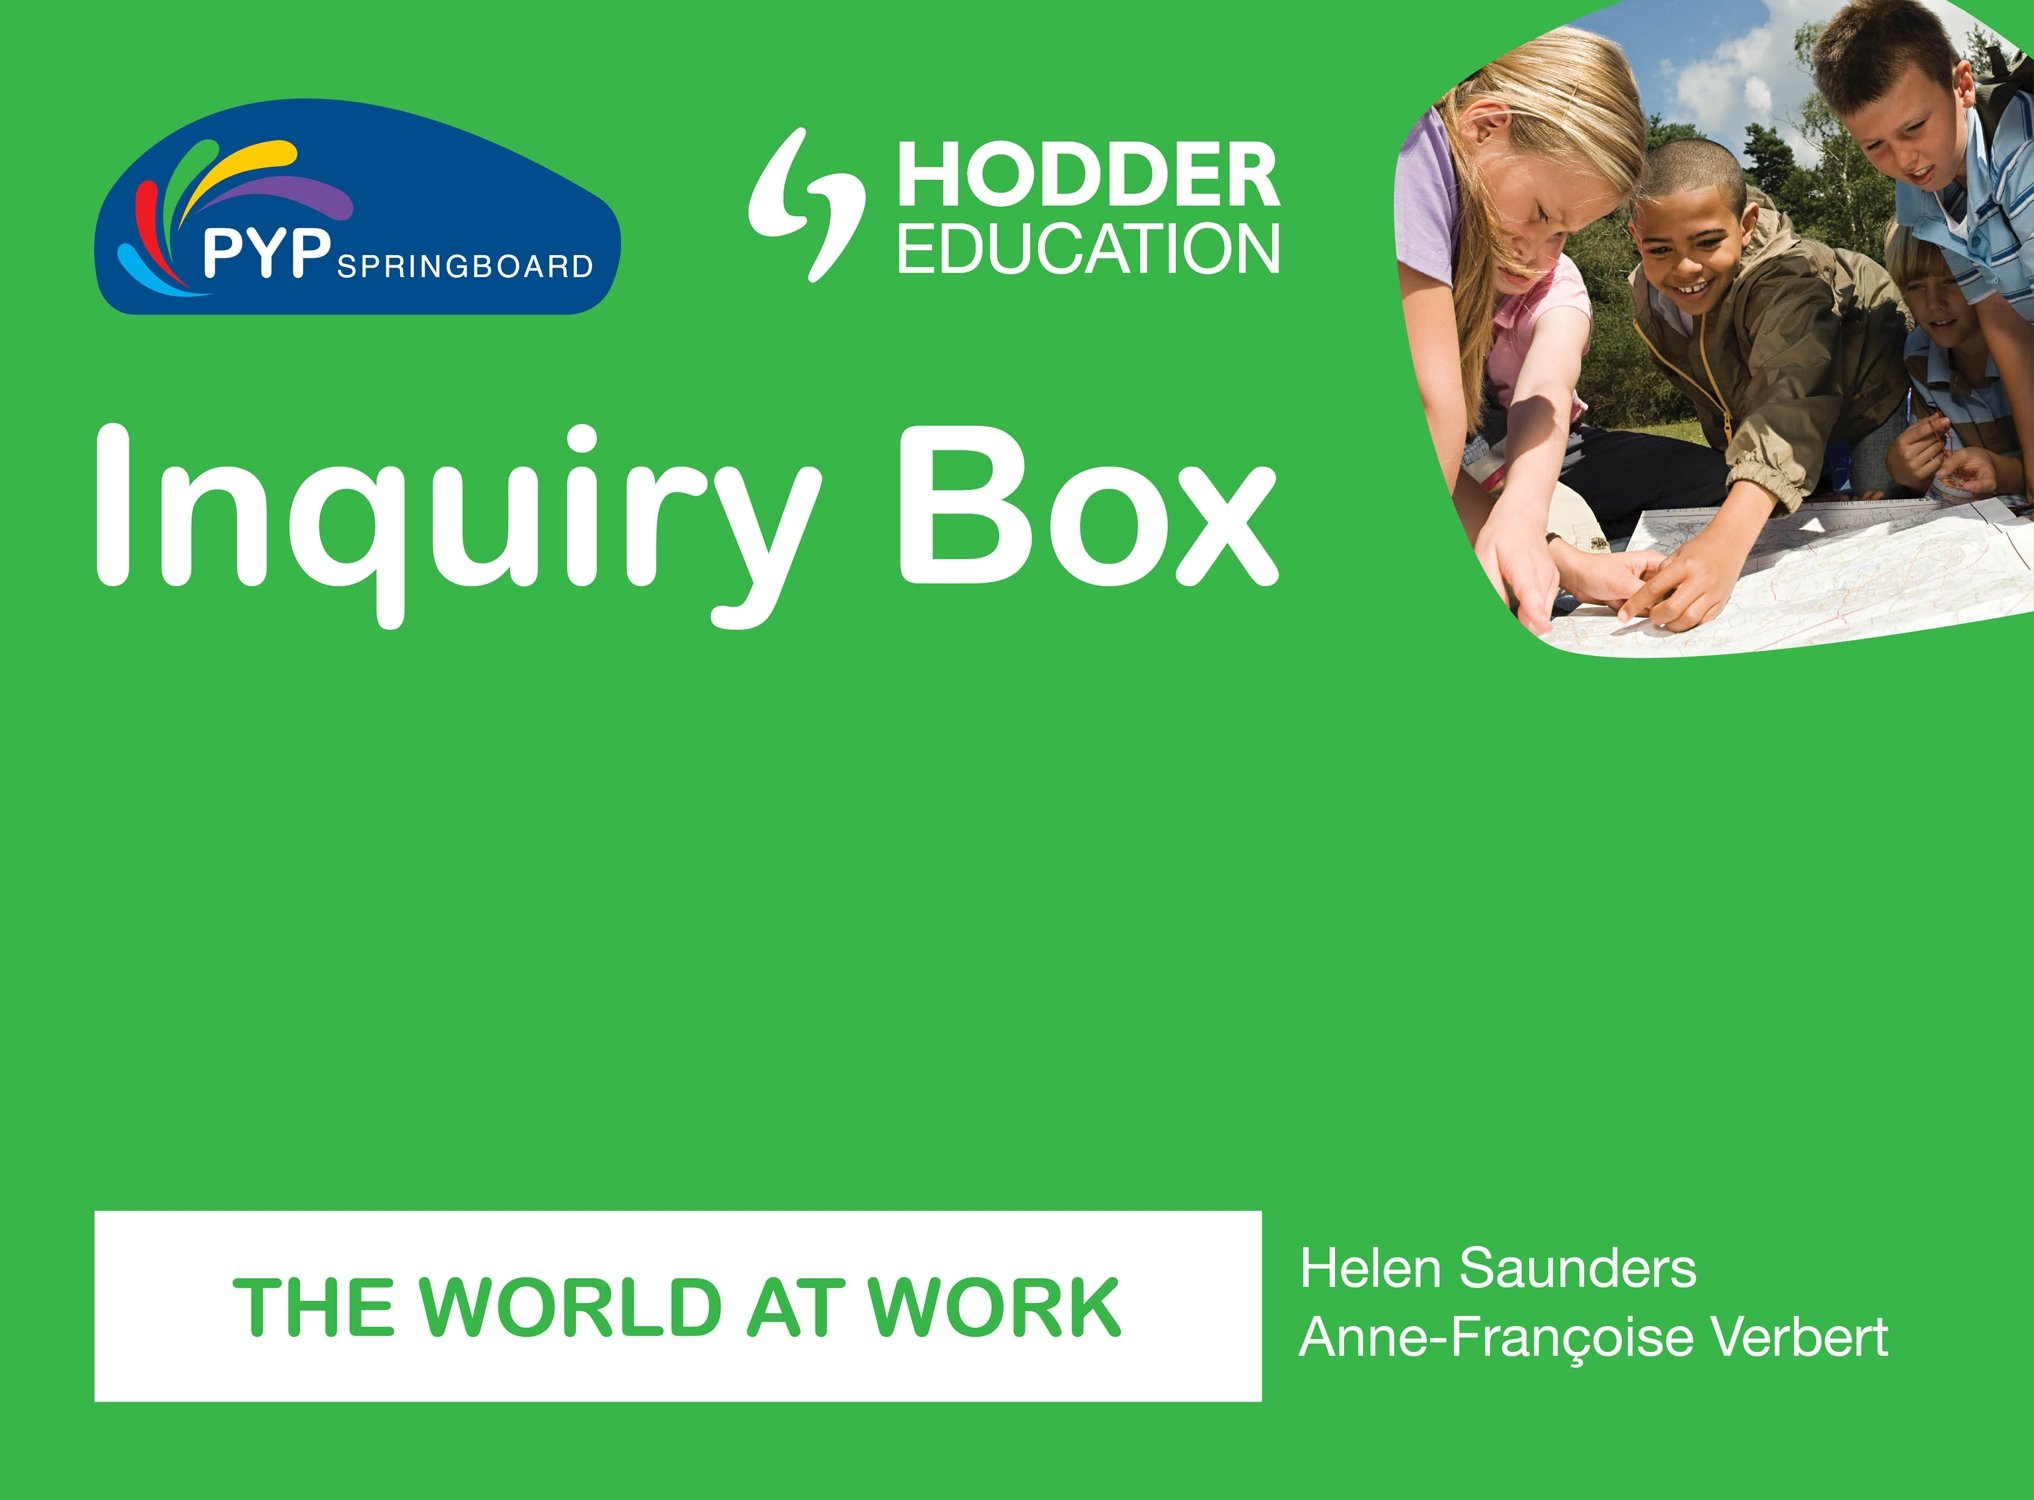 PYP Springboard Inquiry Box: The world of work